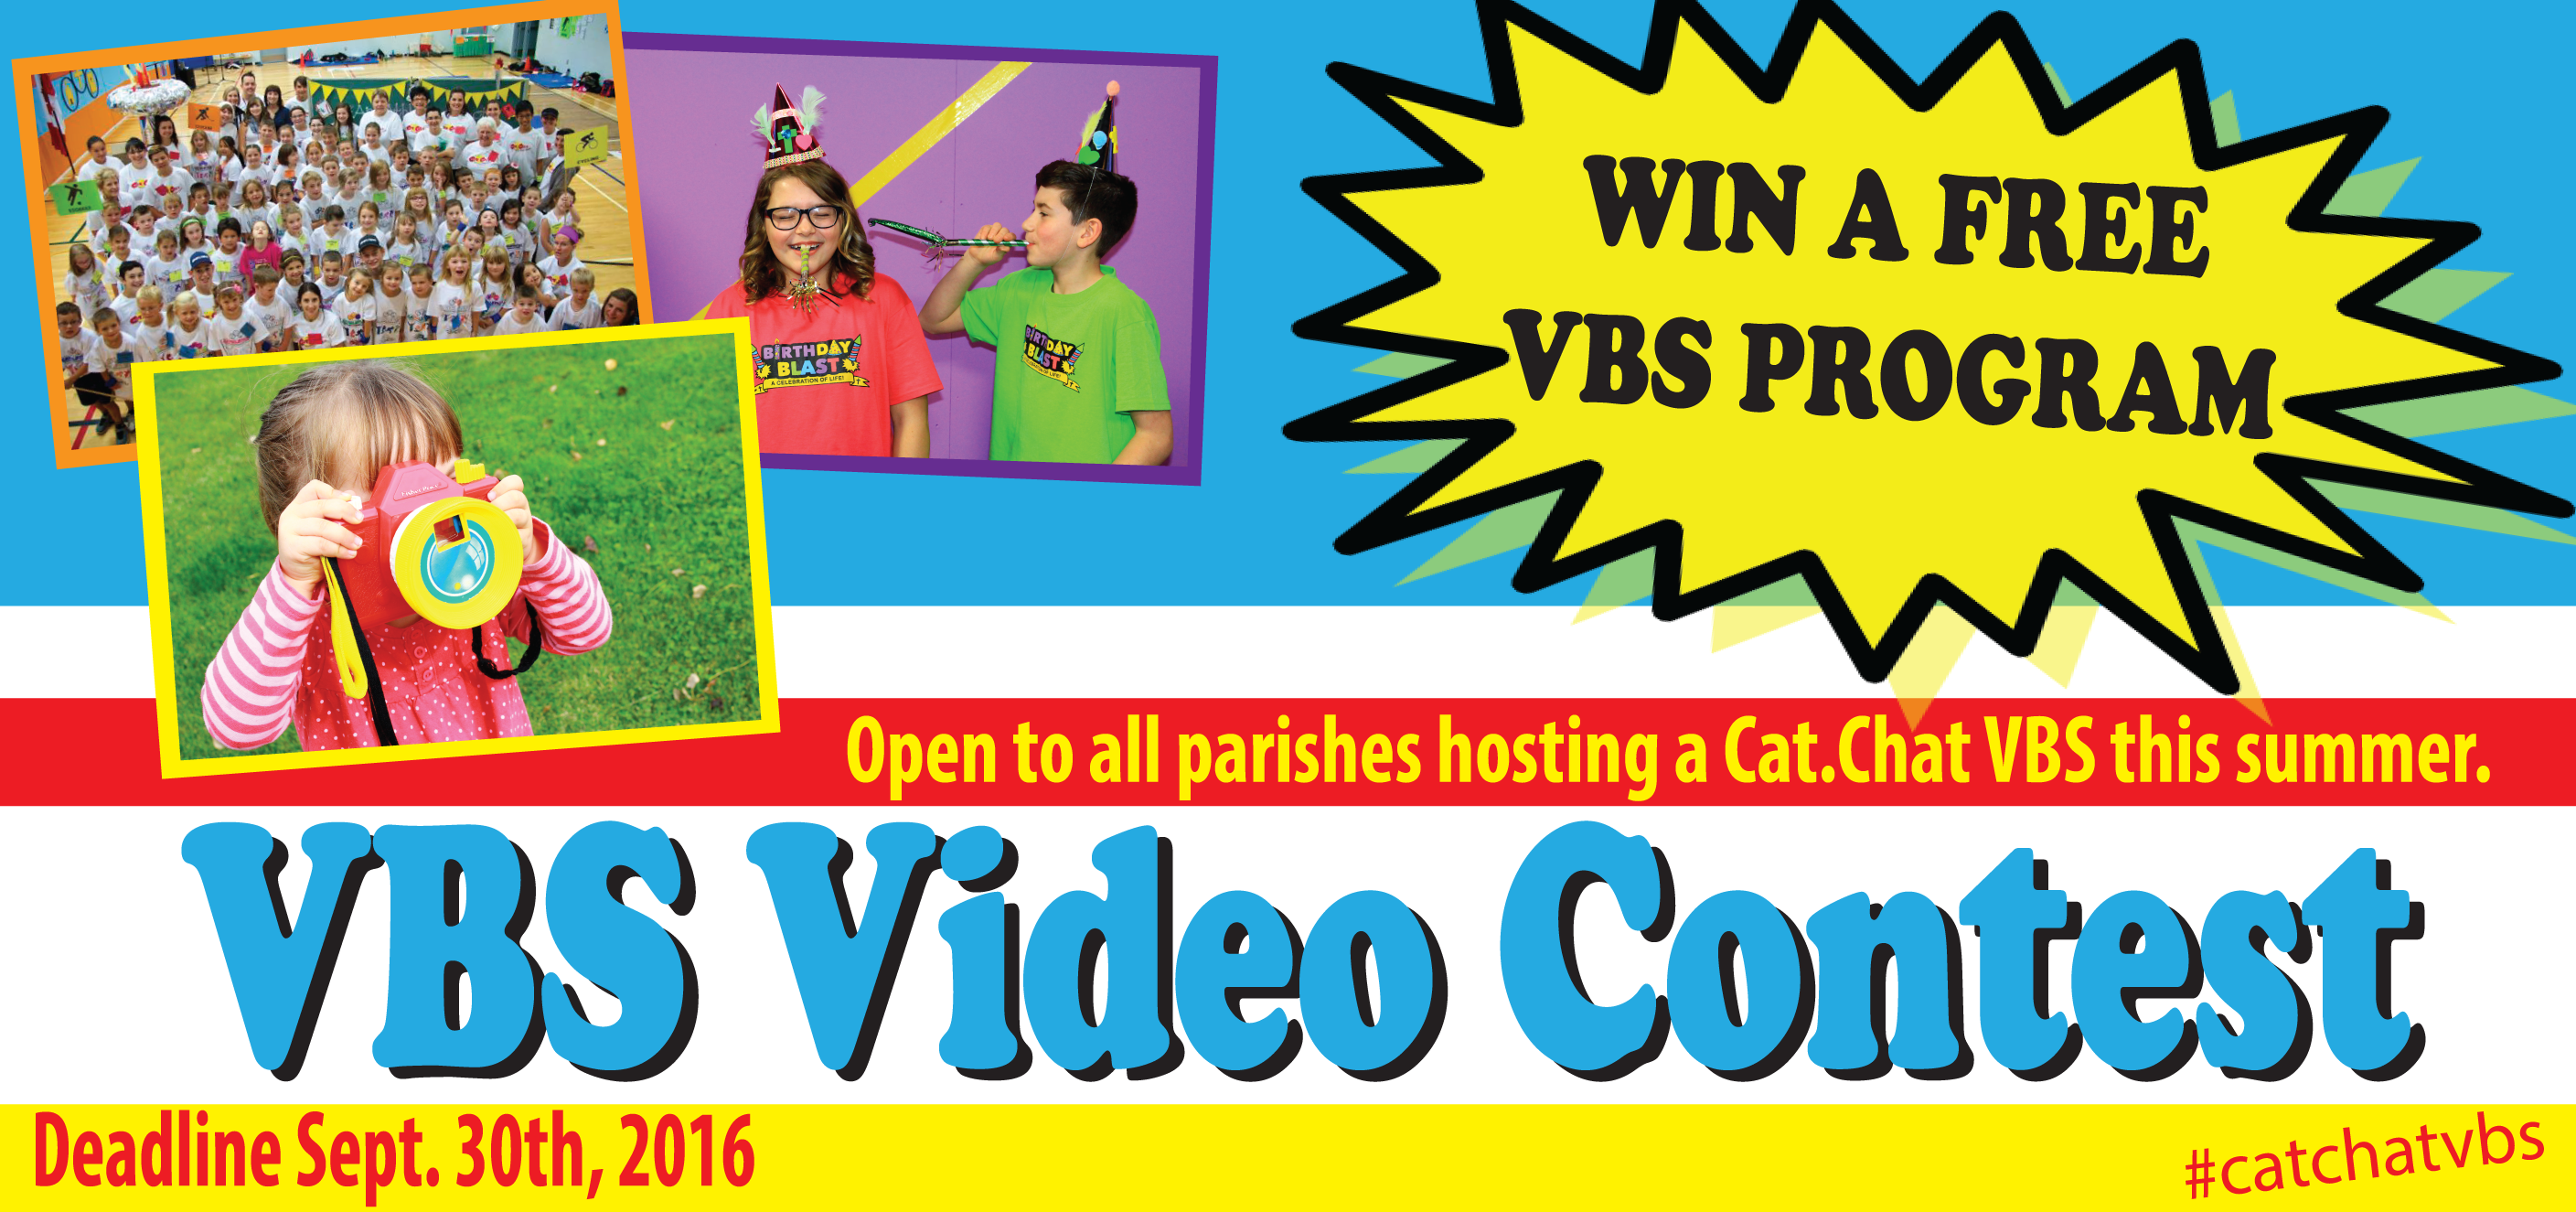 Cat.Chat VBS Video Contest 2016